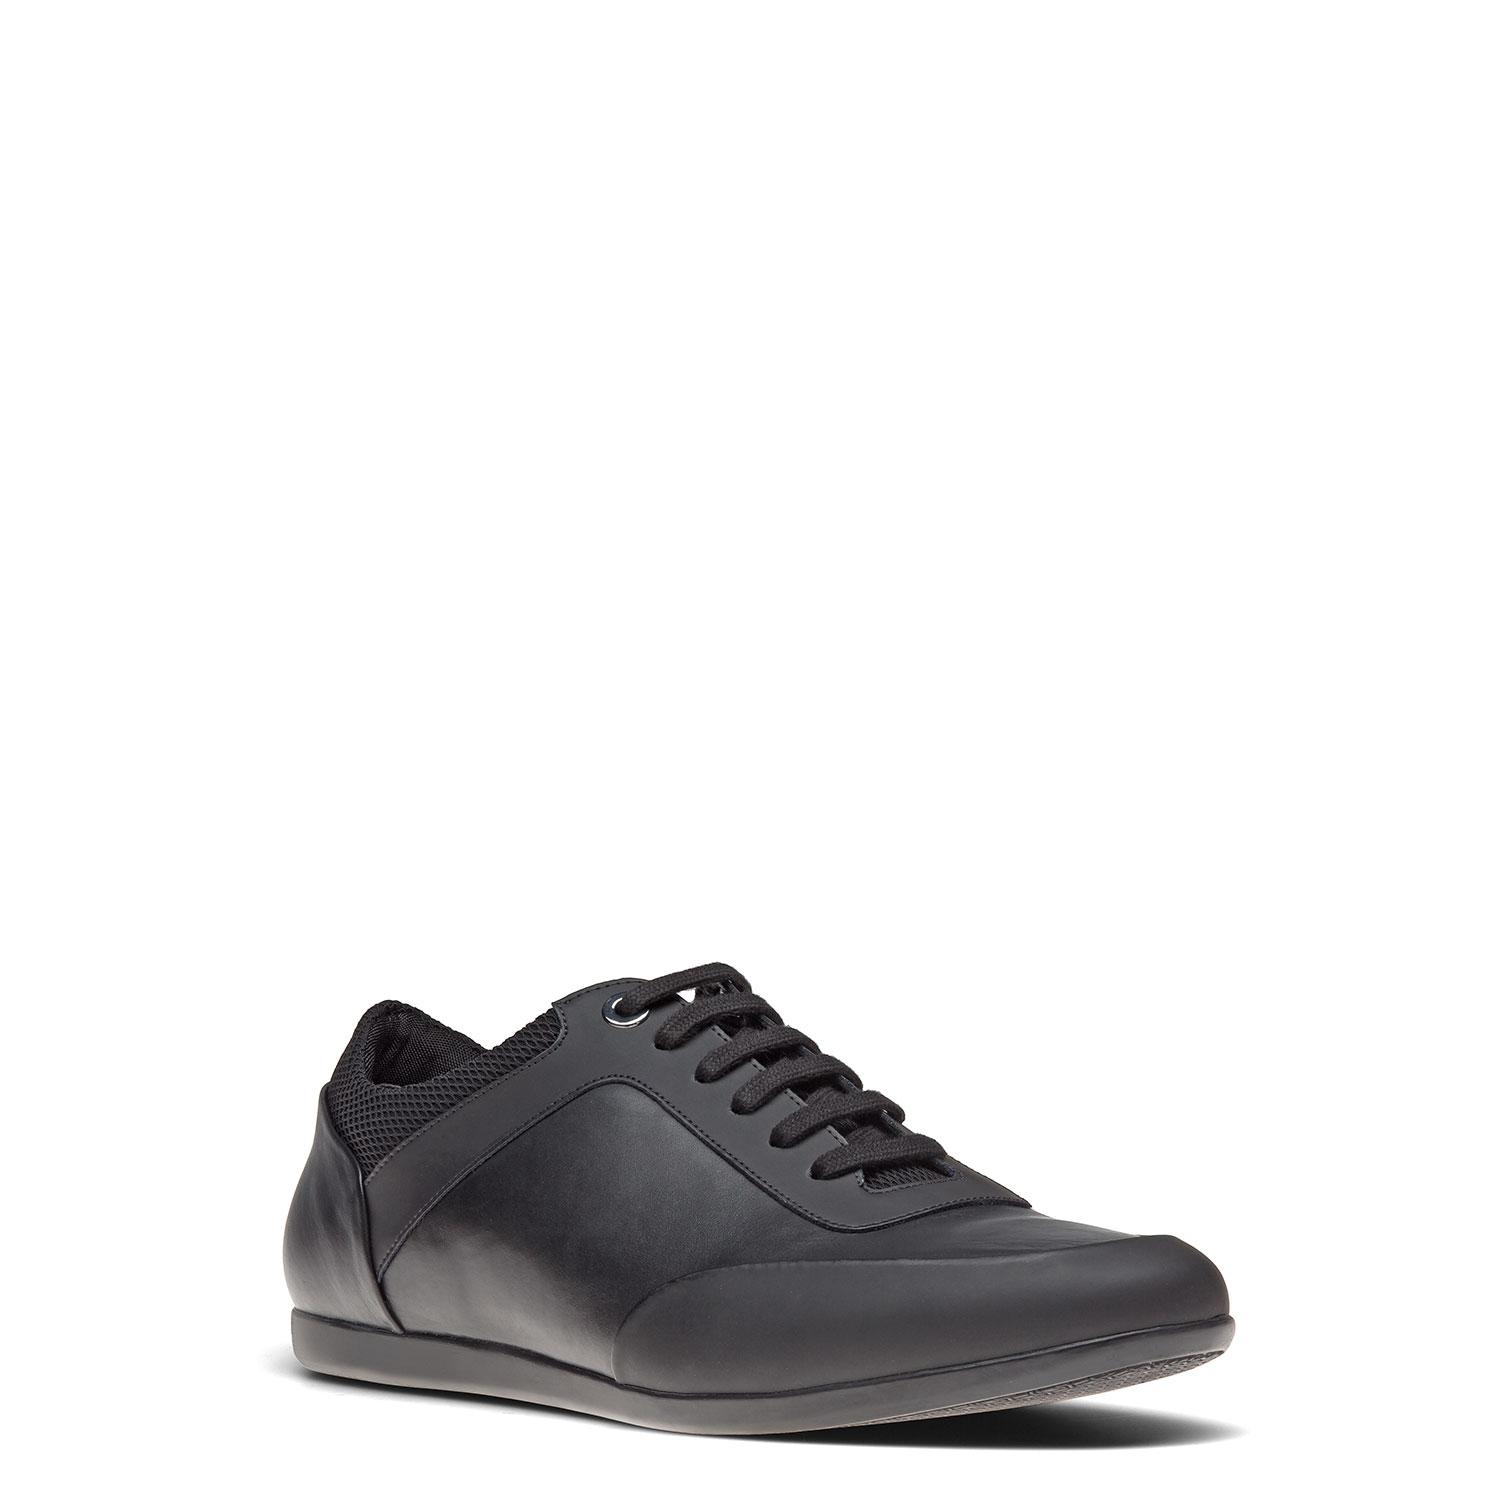 Men's shoes CARLO PAZOLINI HM-HOG5-1